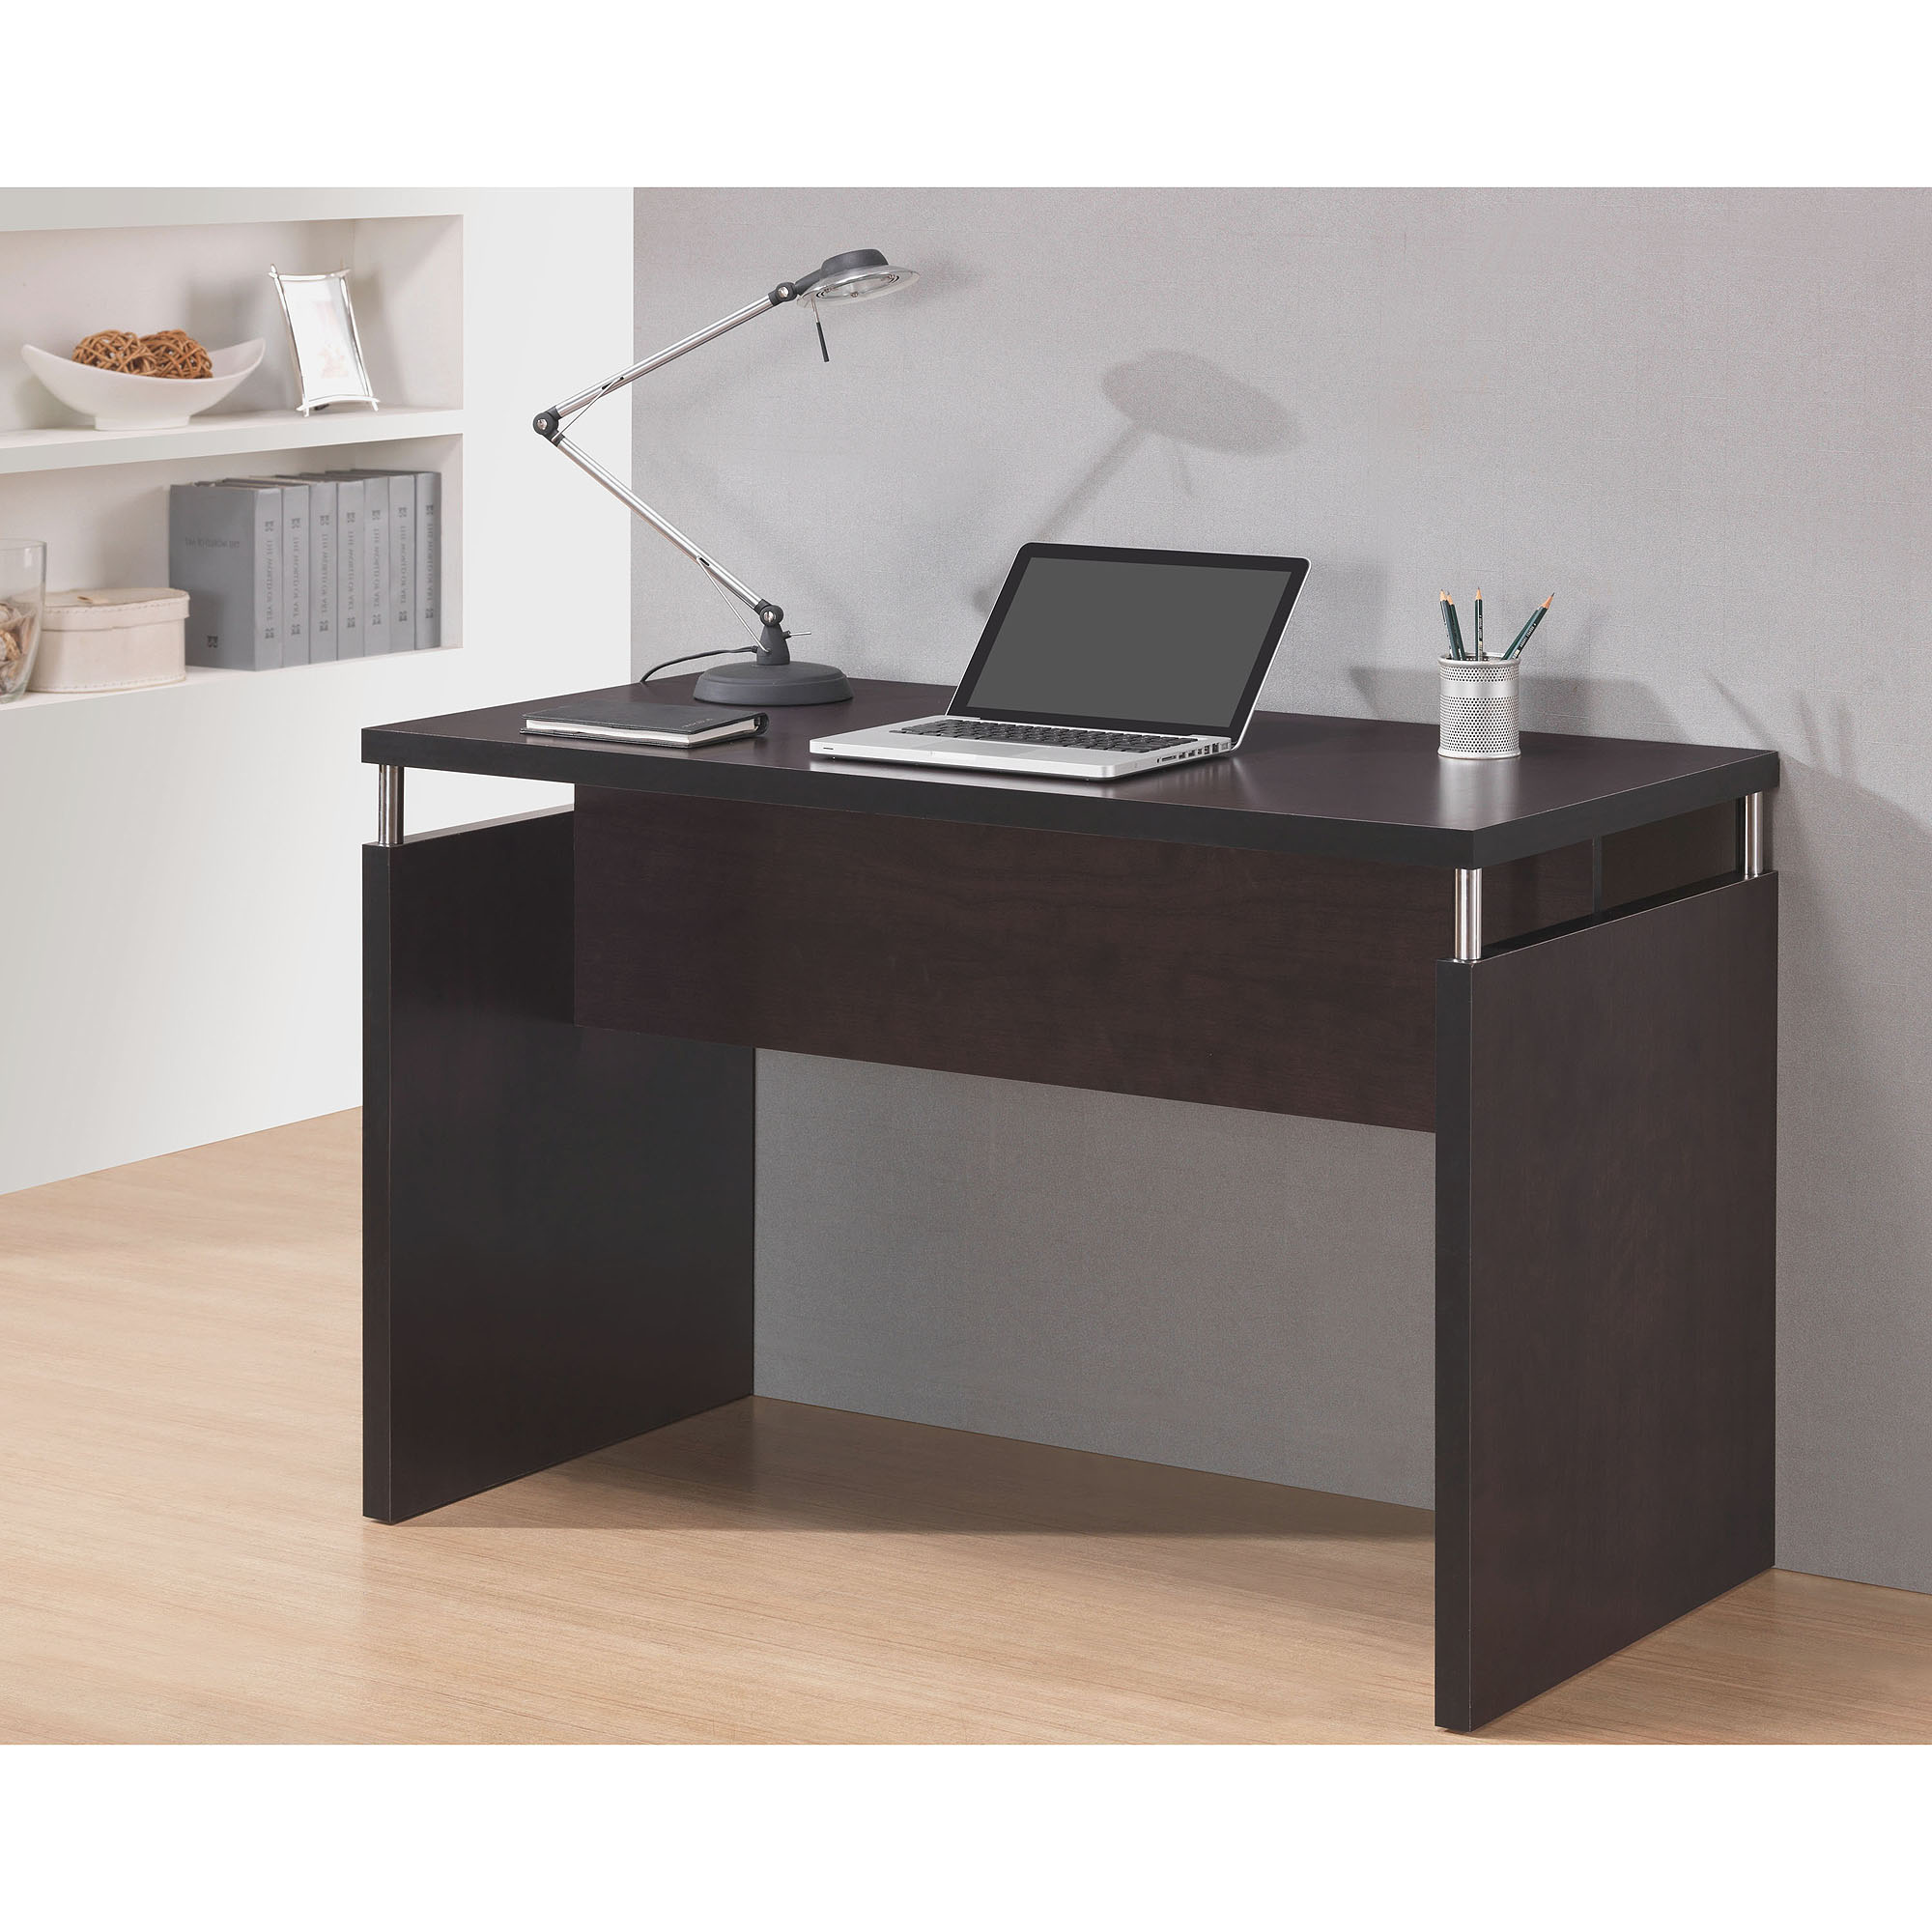 Z Line Designs Computer Desk Assembly Instructions Inspiring